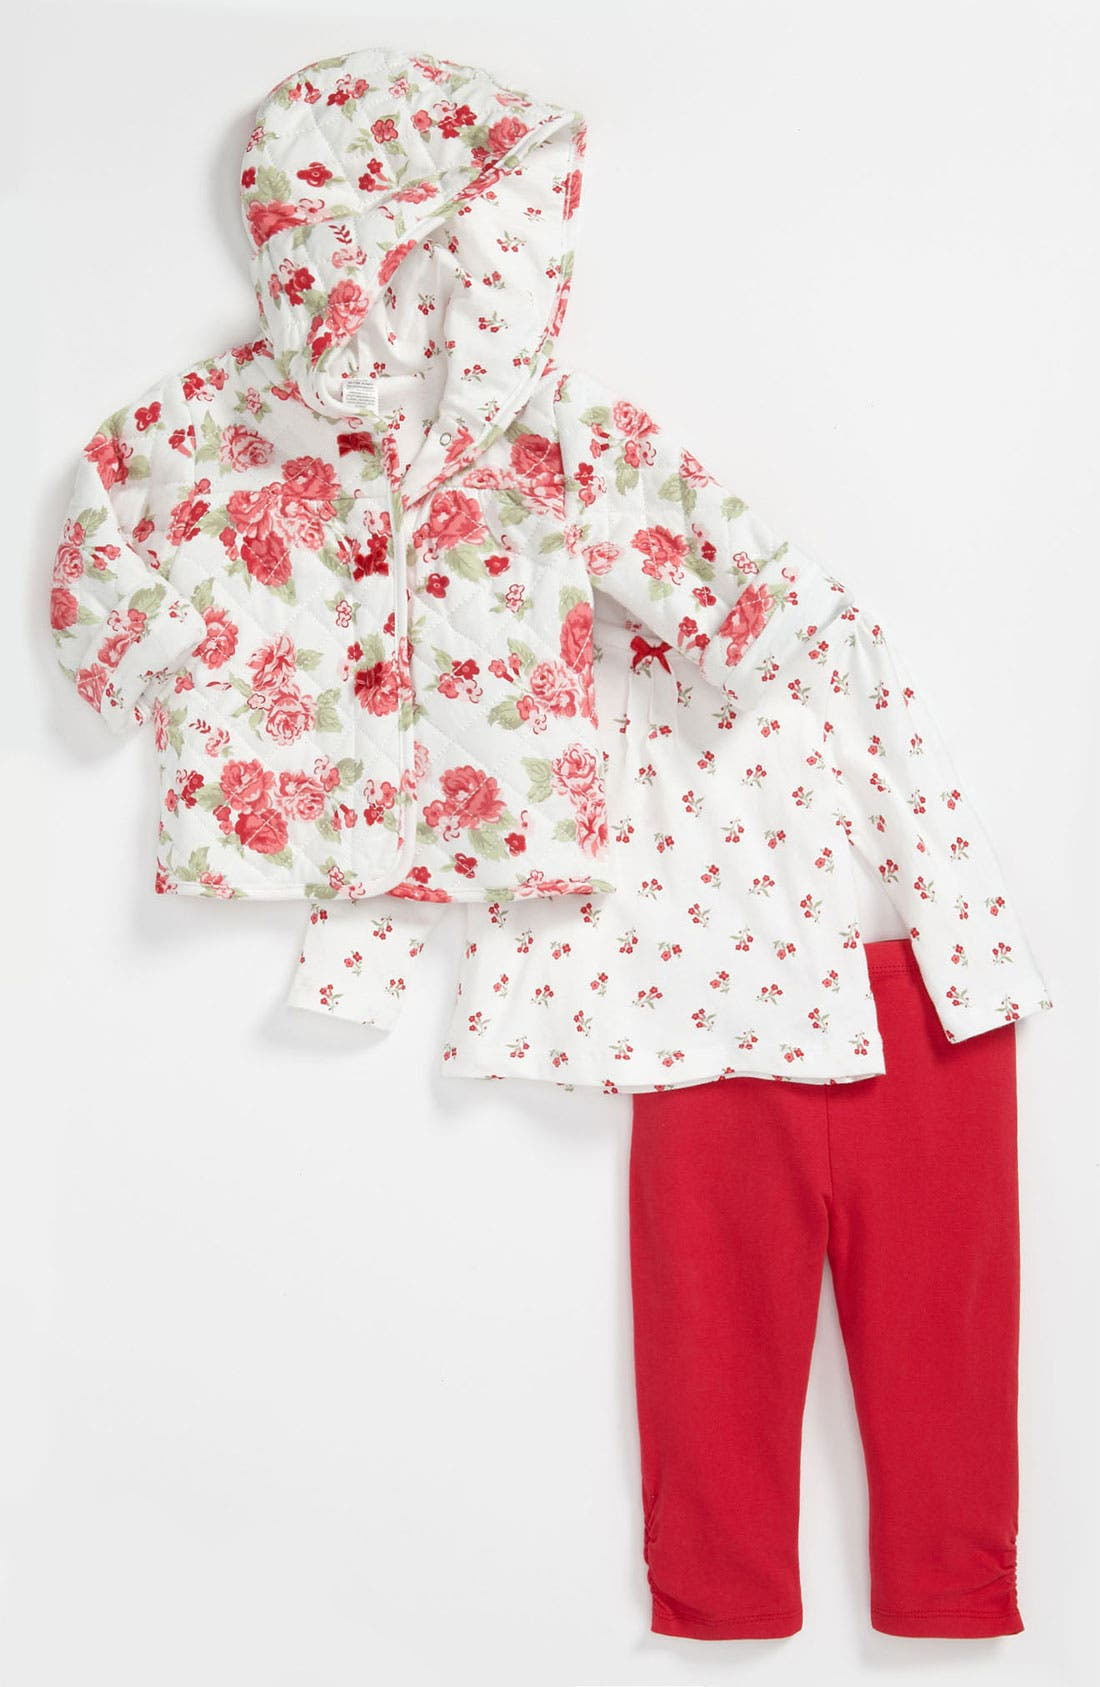 Main Image - Little Me 'Barberry Roses' Top, Pants & Jacket (Infant)